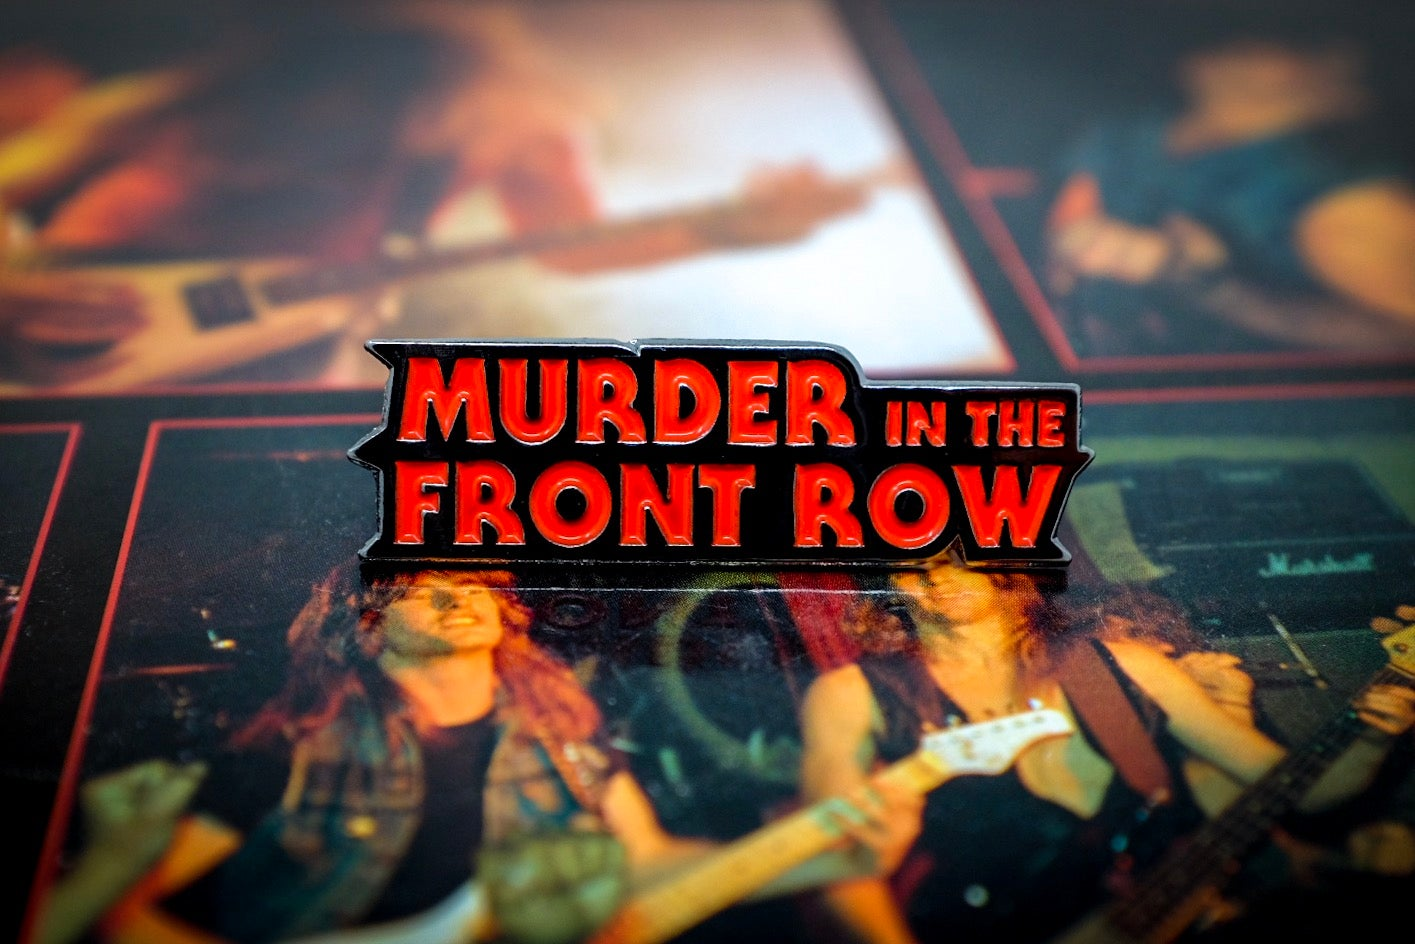 Image of 'Murder in the Front Row' Enamel Pin